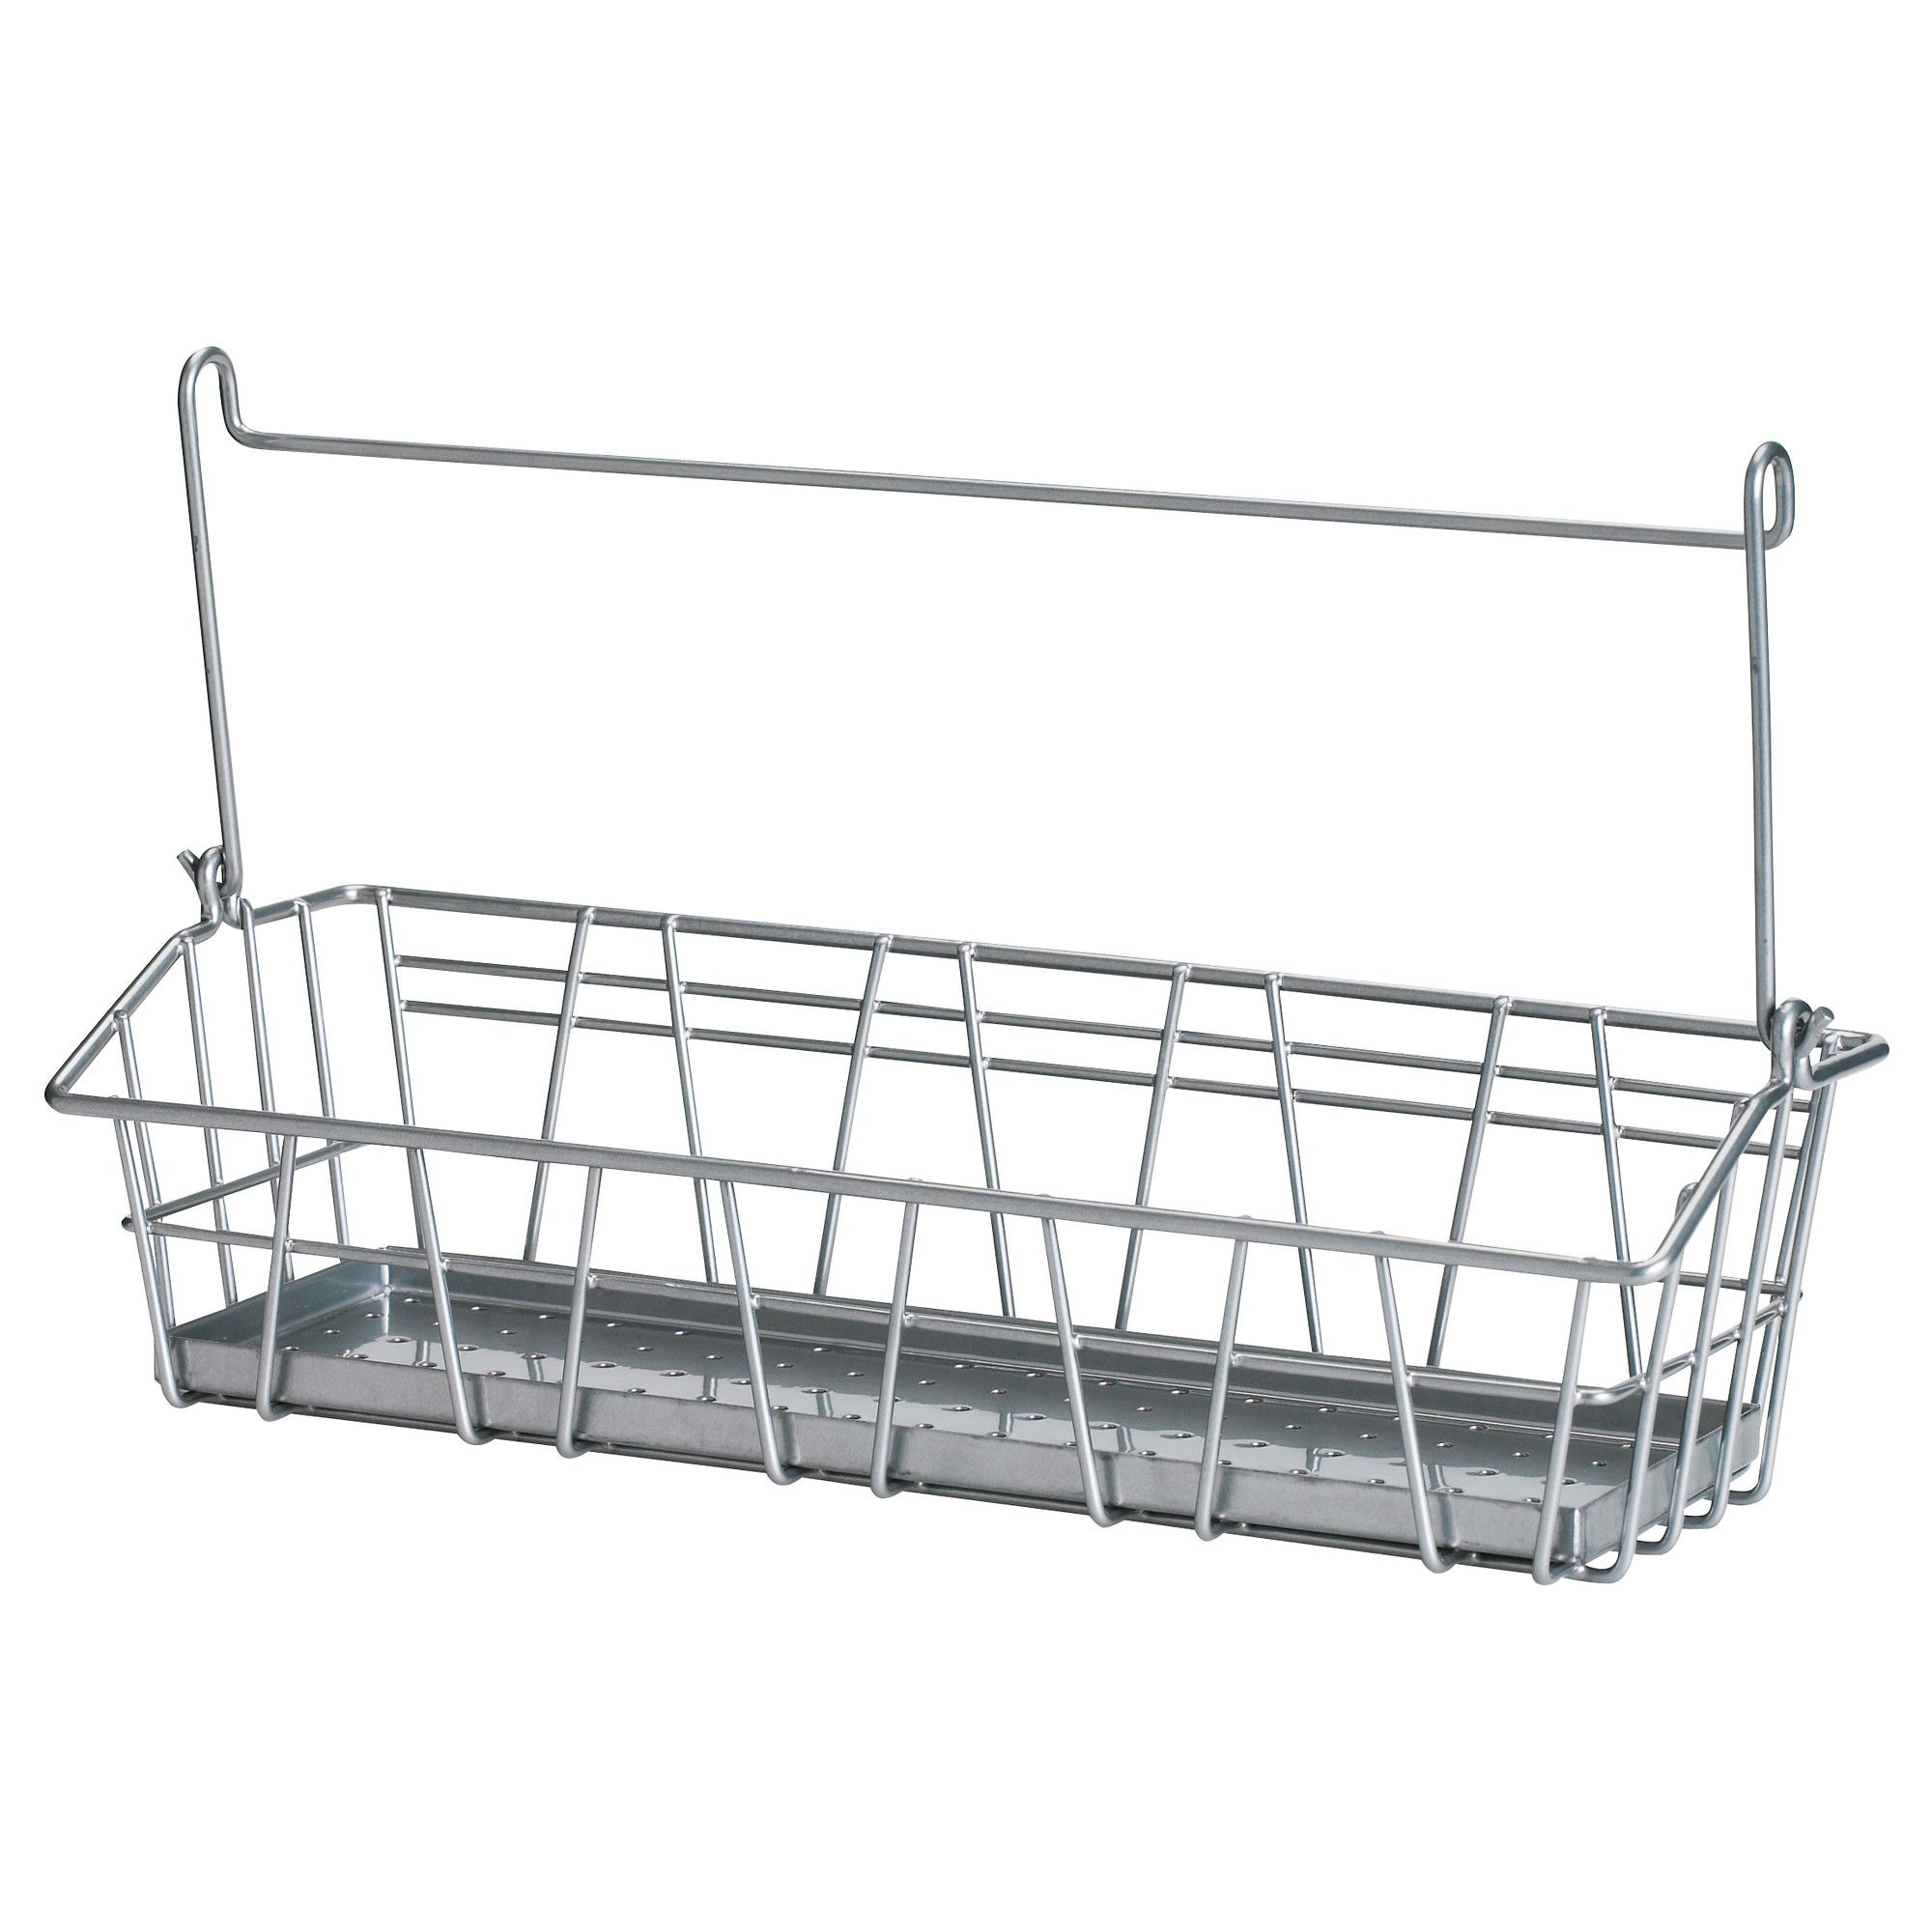 Bygel Wire Basket Ikea 2 99 Hang From Rail Under Island Or Hook To Underside Of Cabinet Shelves E And Jar Storage